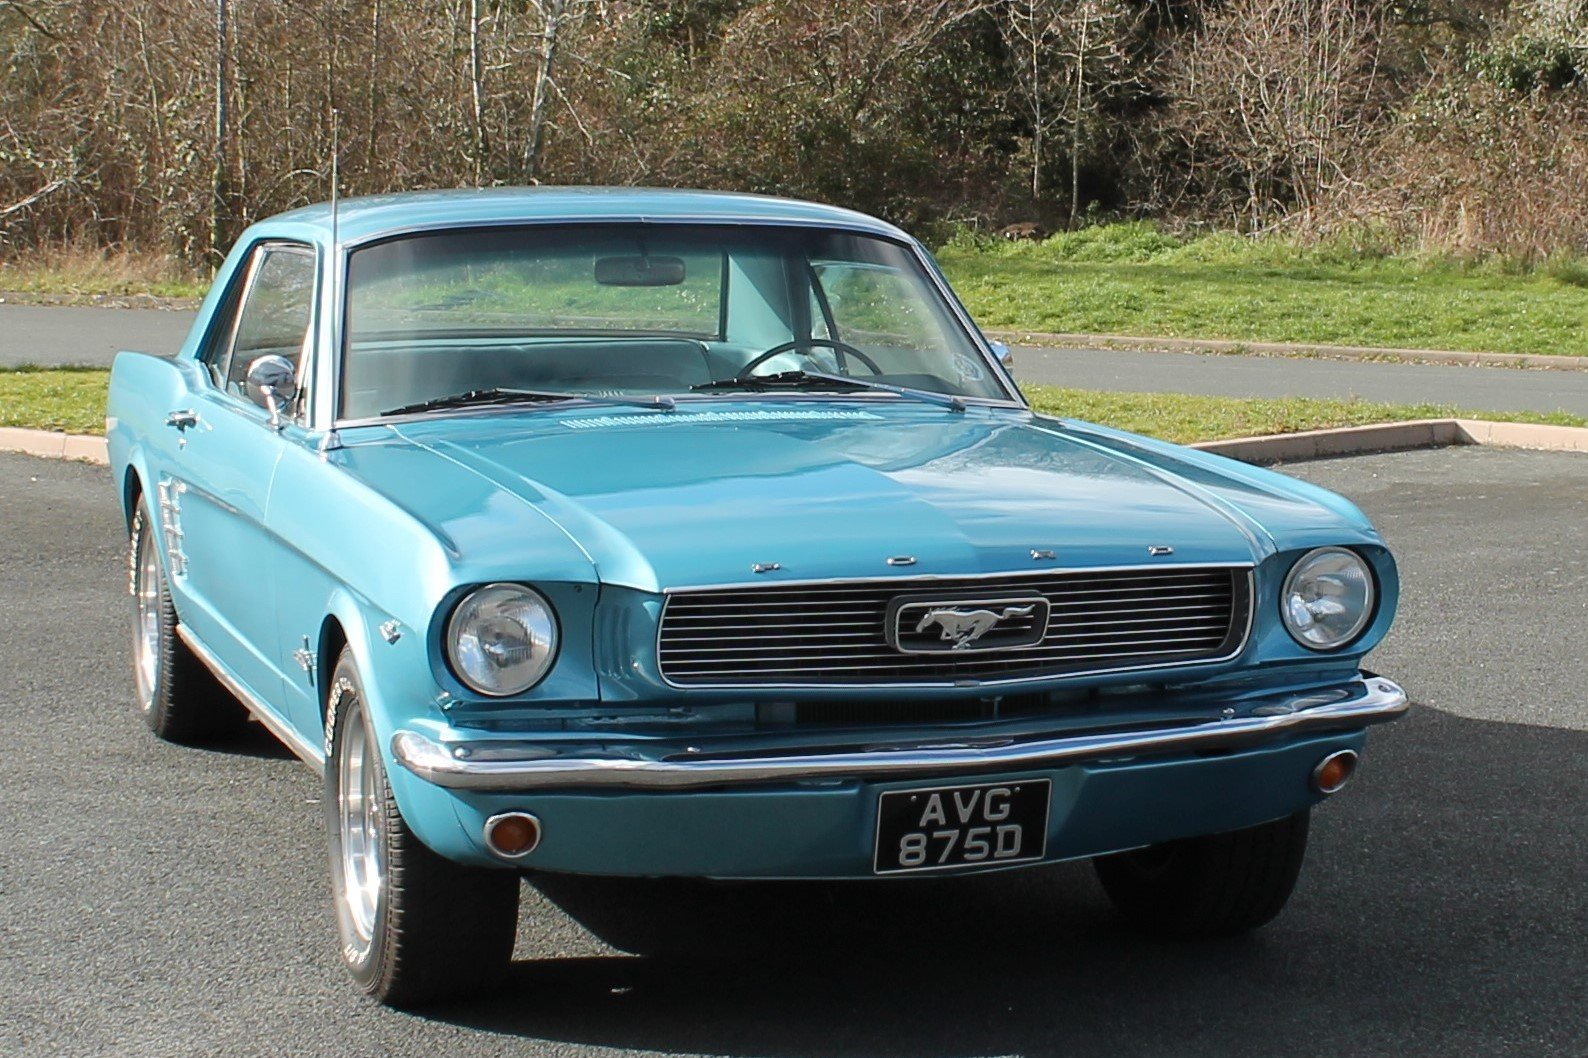 1966 Ford Mustang 289 V8 Automatic Power Steering SOLD (picture 1 of 6)